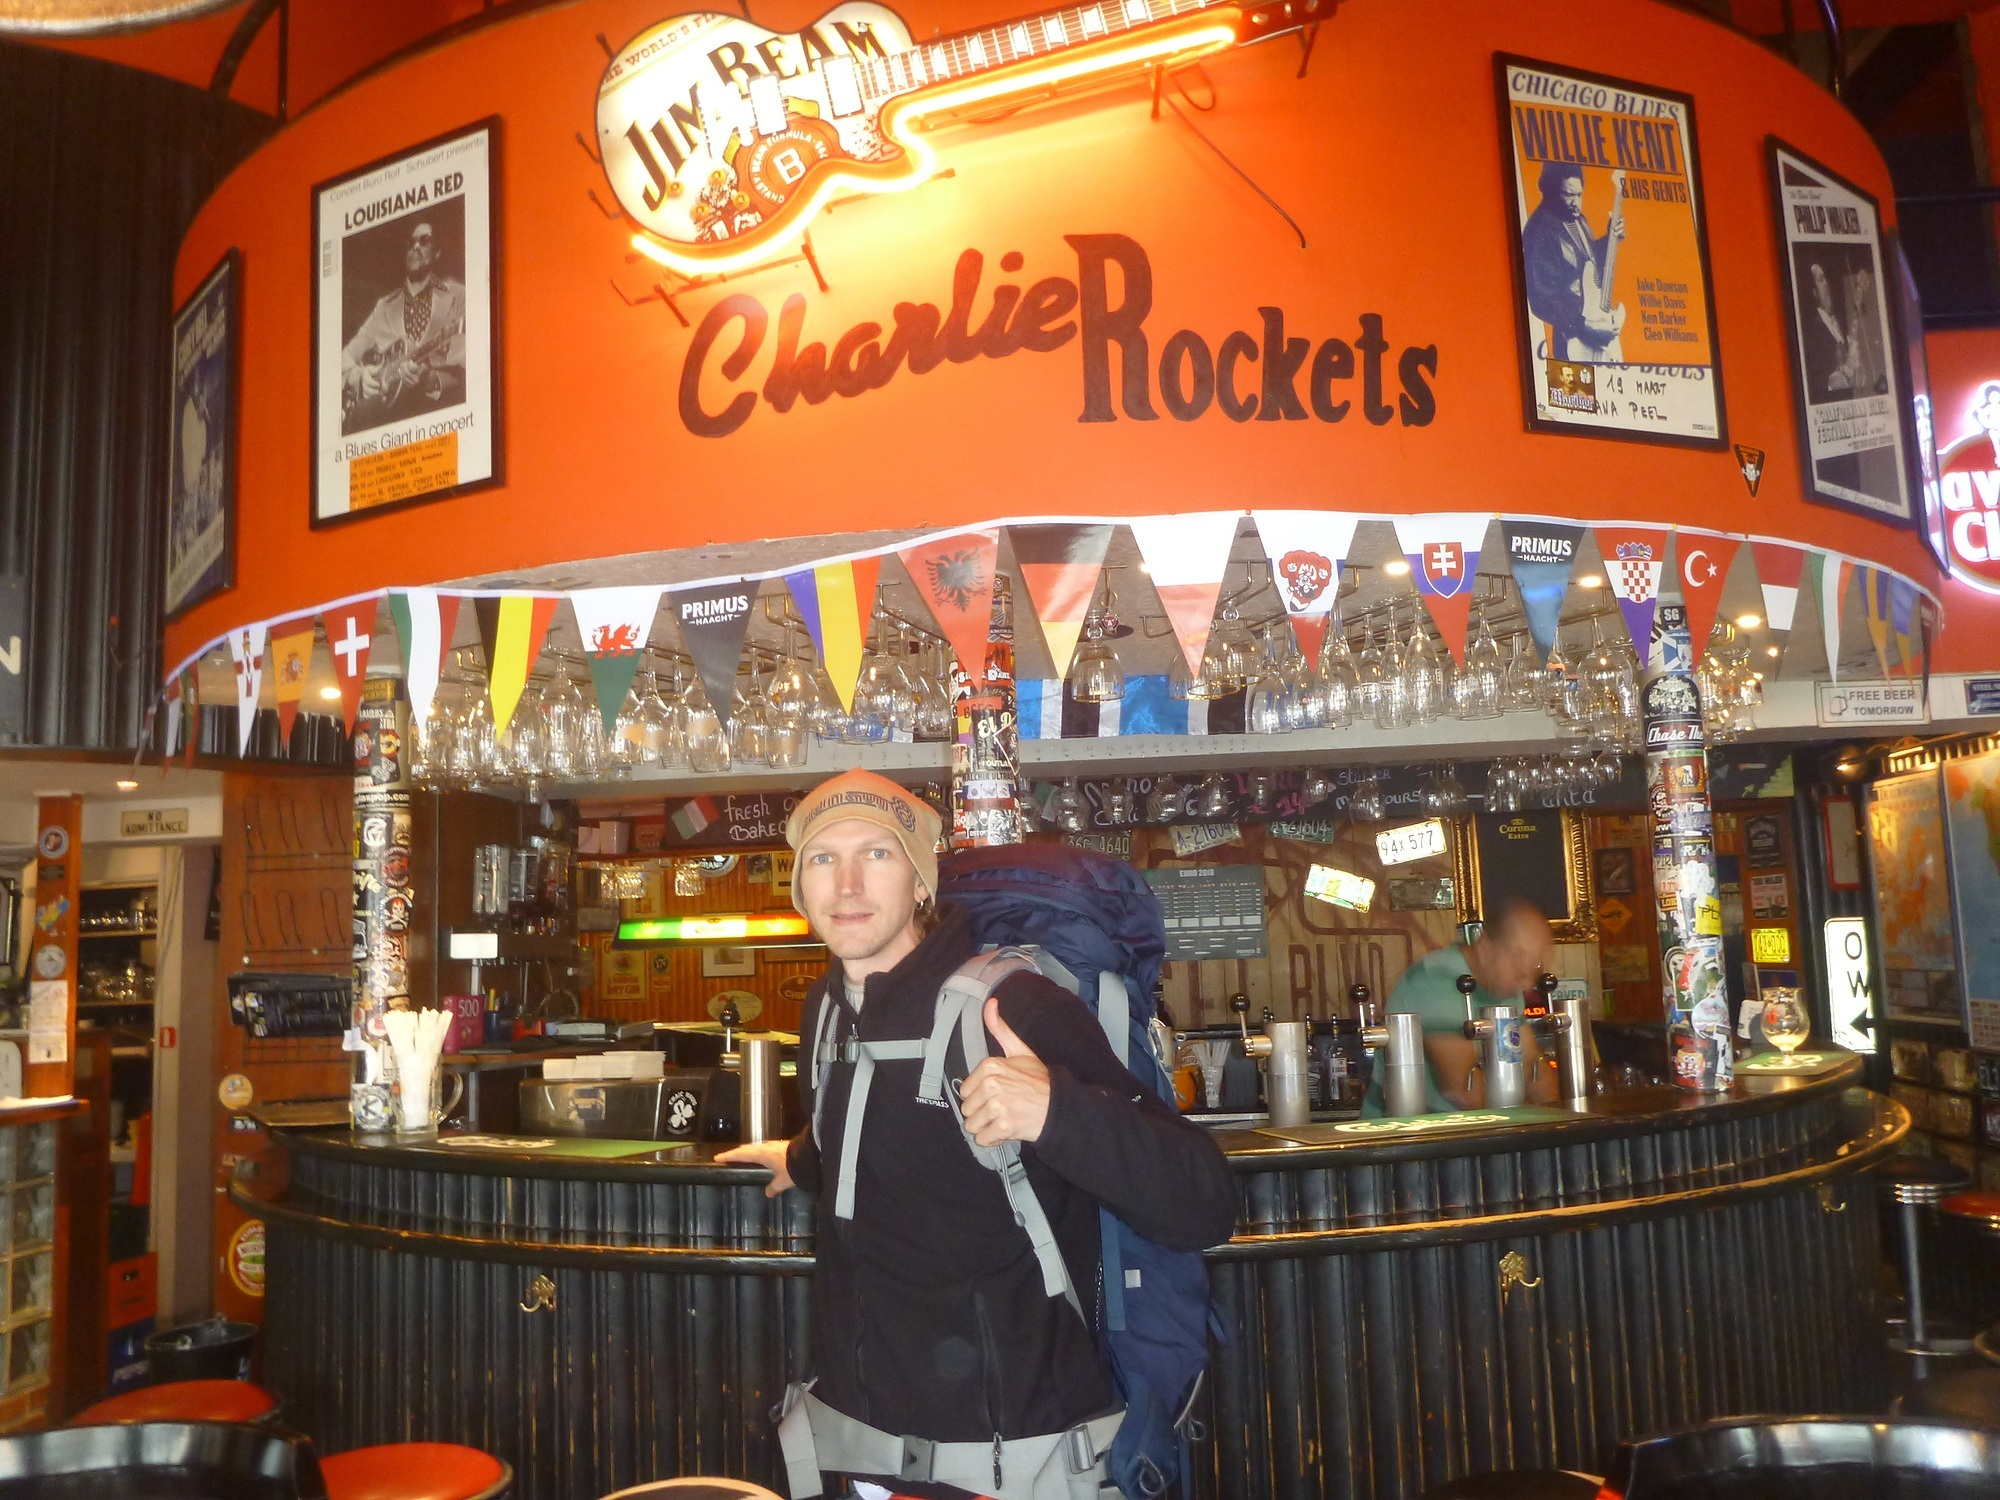 Backpacking in Belgium: Staying at Charlie Rockets Hostel in Bruges